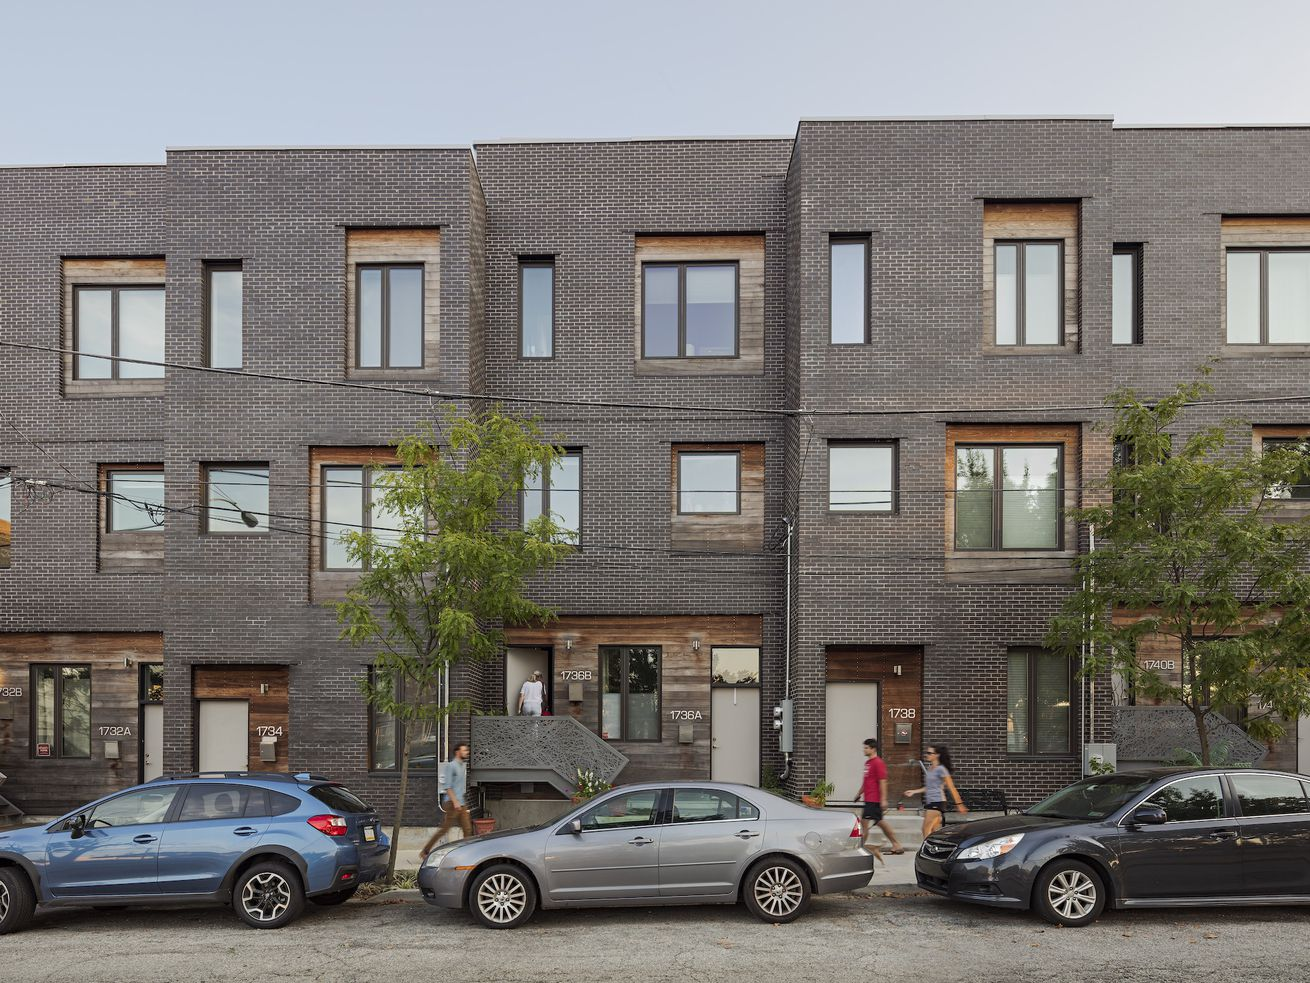 """In Philadelphia, the architecture firm ISA looks for ways new housing can address other equity challenges, like public health, access to open space, and emotional well-being. Its Powerhouse project, a 31-unit infill development completed in 2014, includes the """"super stoops"""" and street furniture that encourage social engagement among neighbors and passersby."""